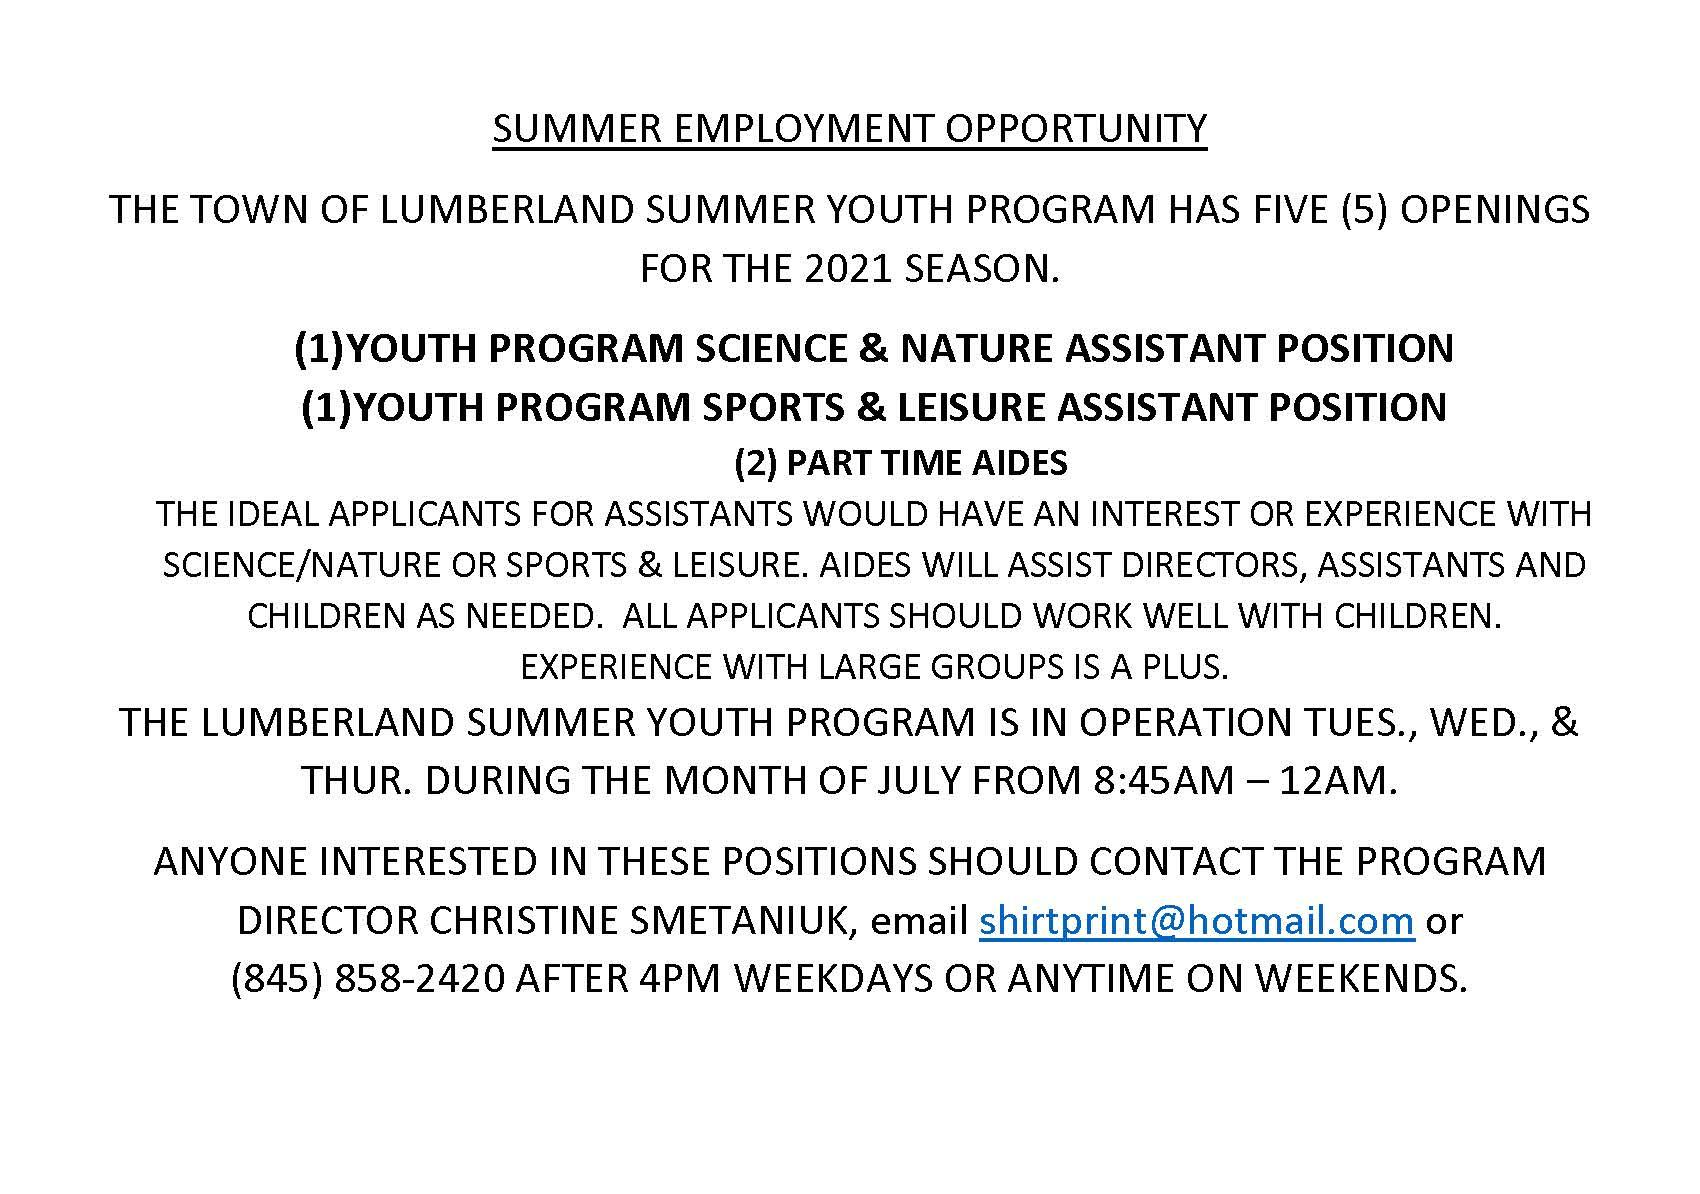 SUMMER EMPLOYMENT OPPORTUNITY - Copy